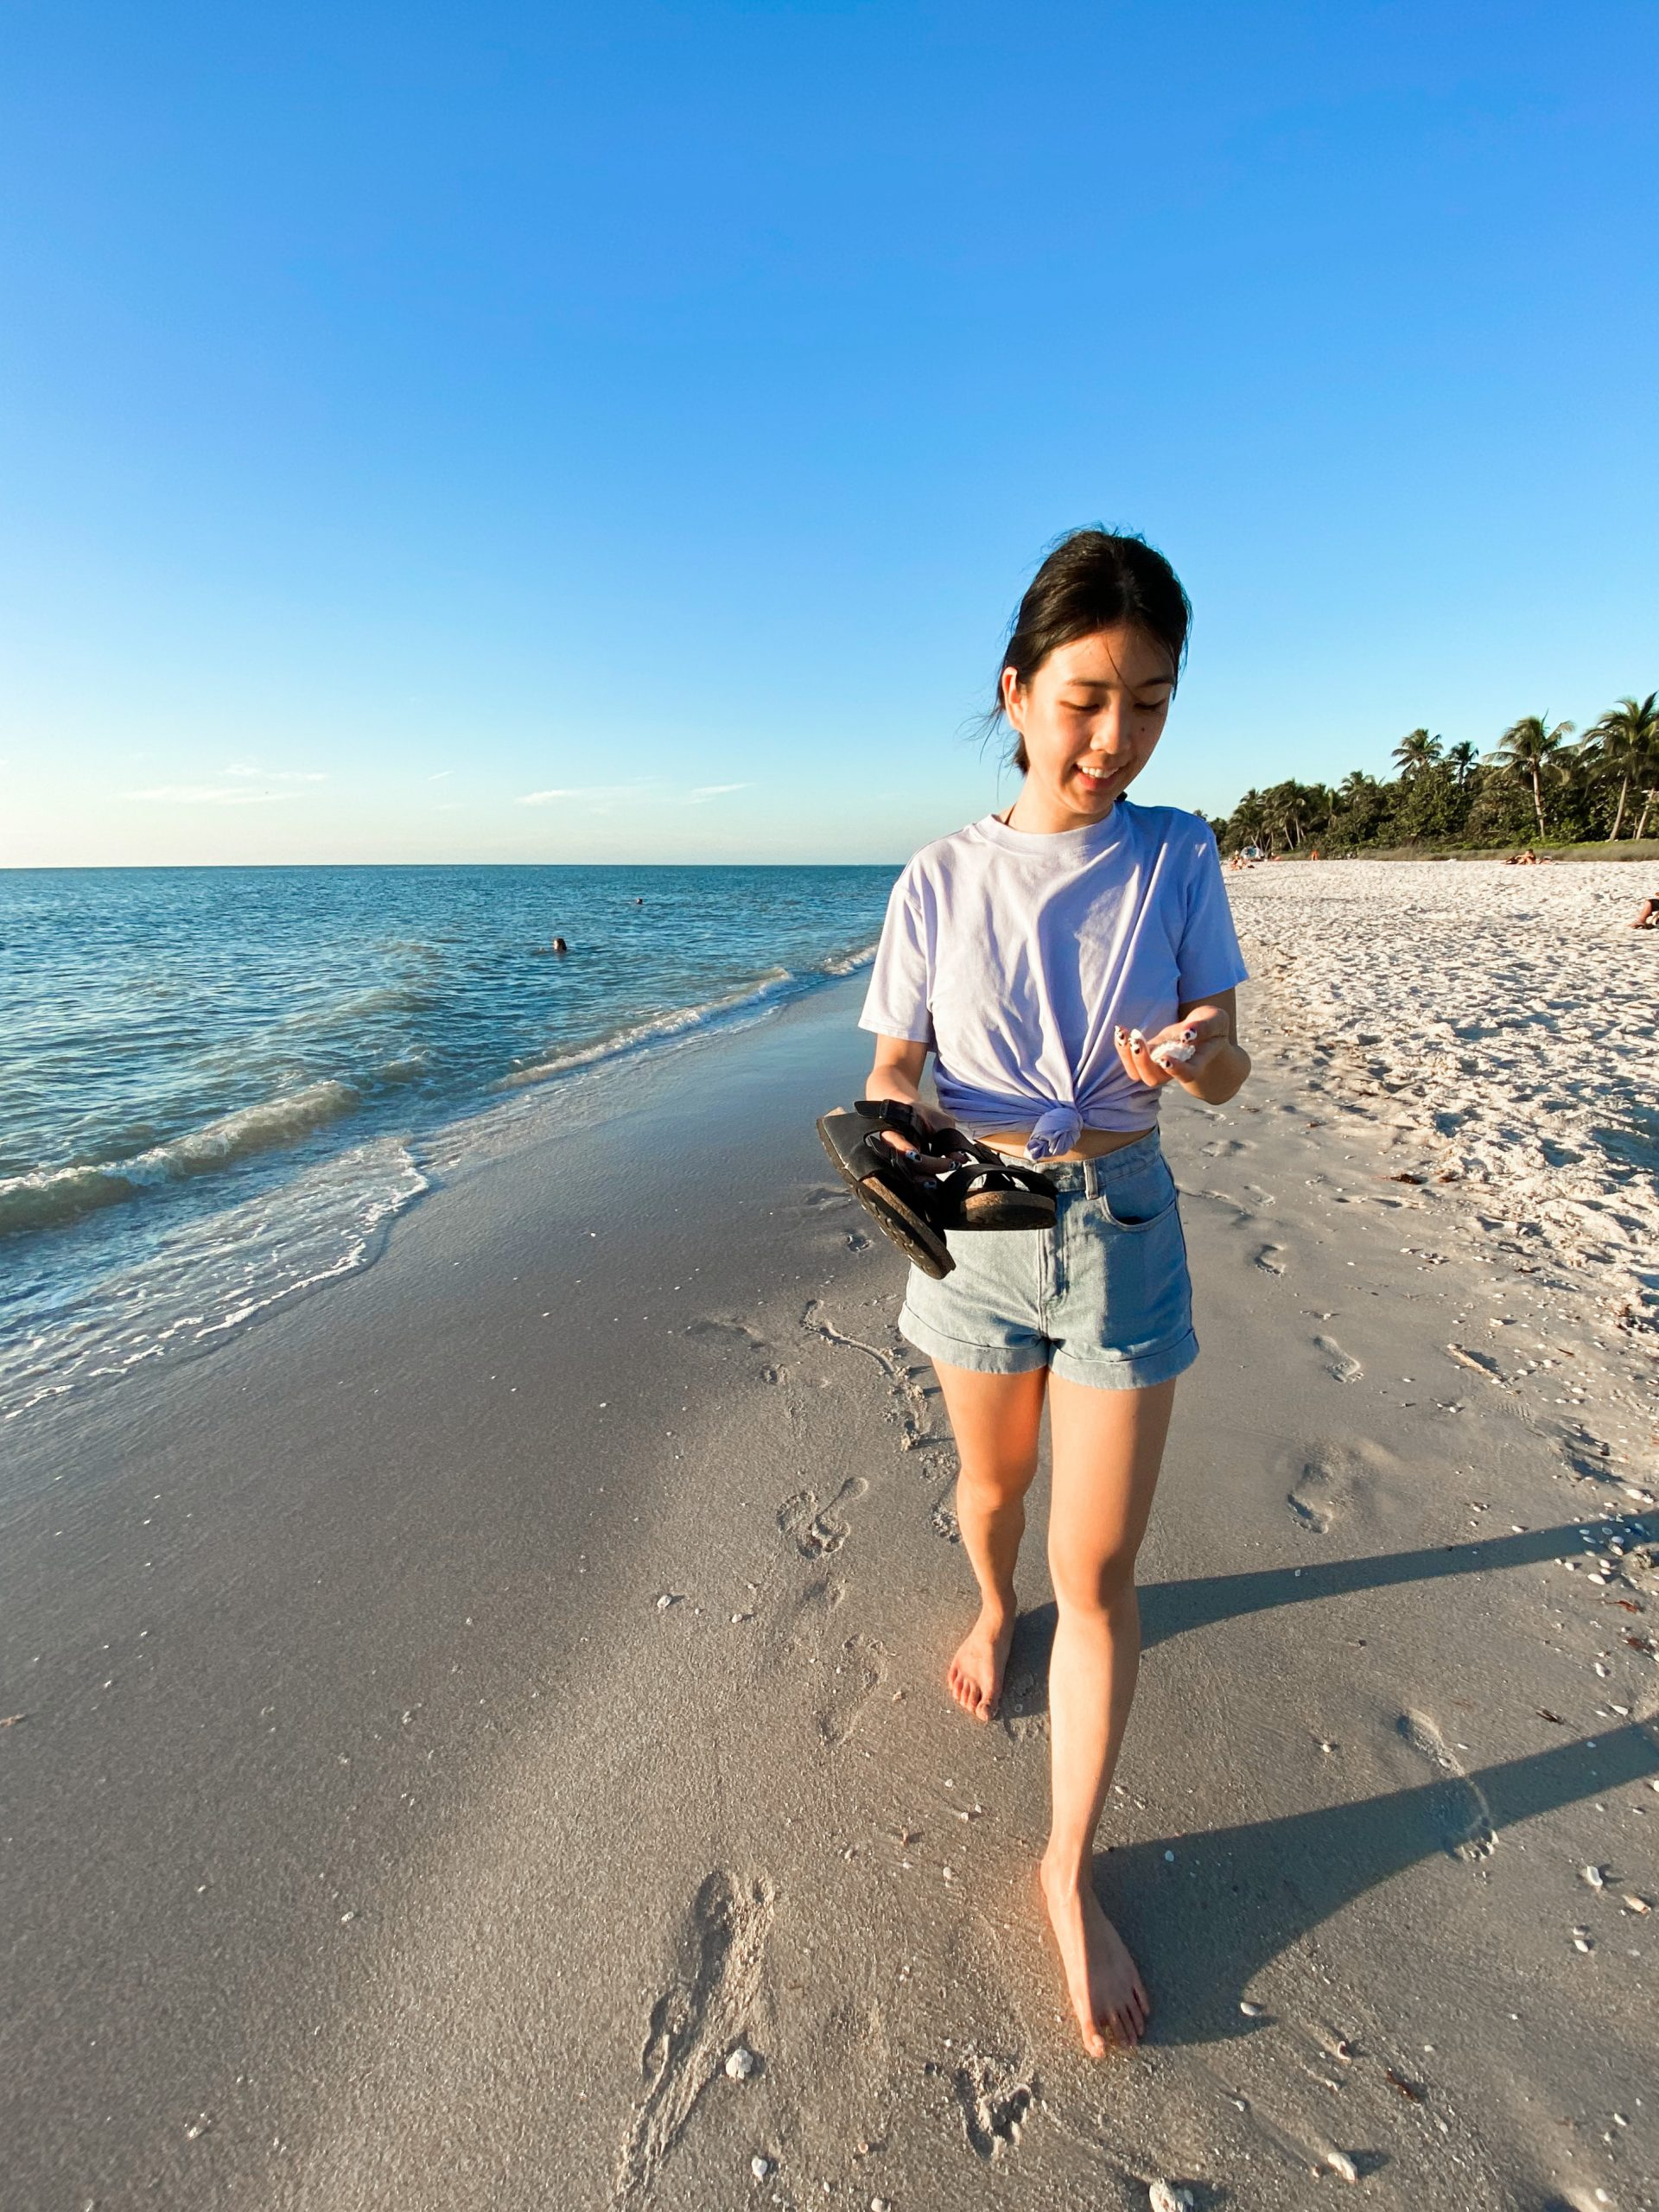 Collecting seashells along the Naples shoreline